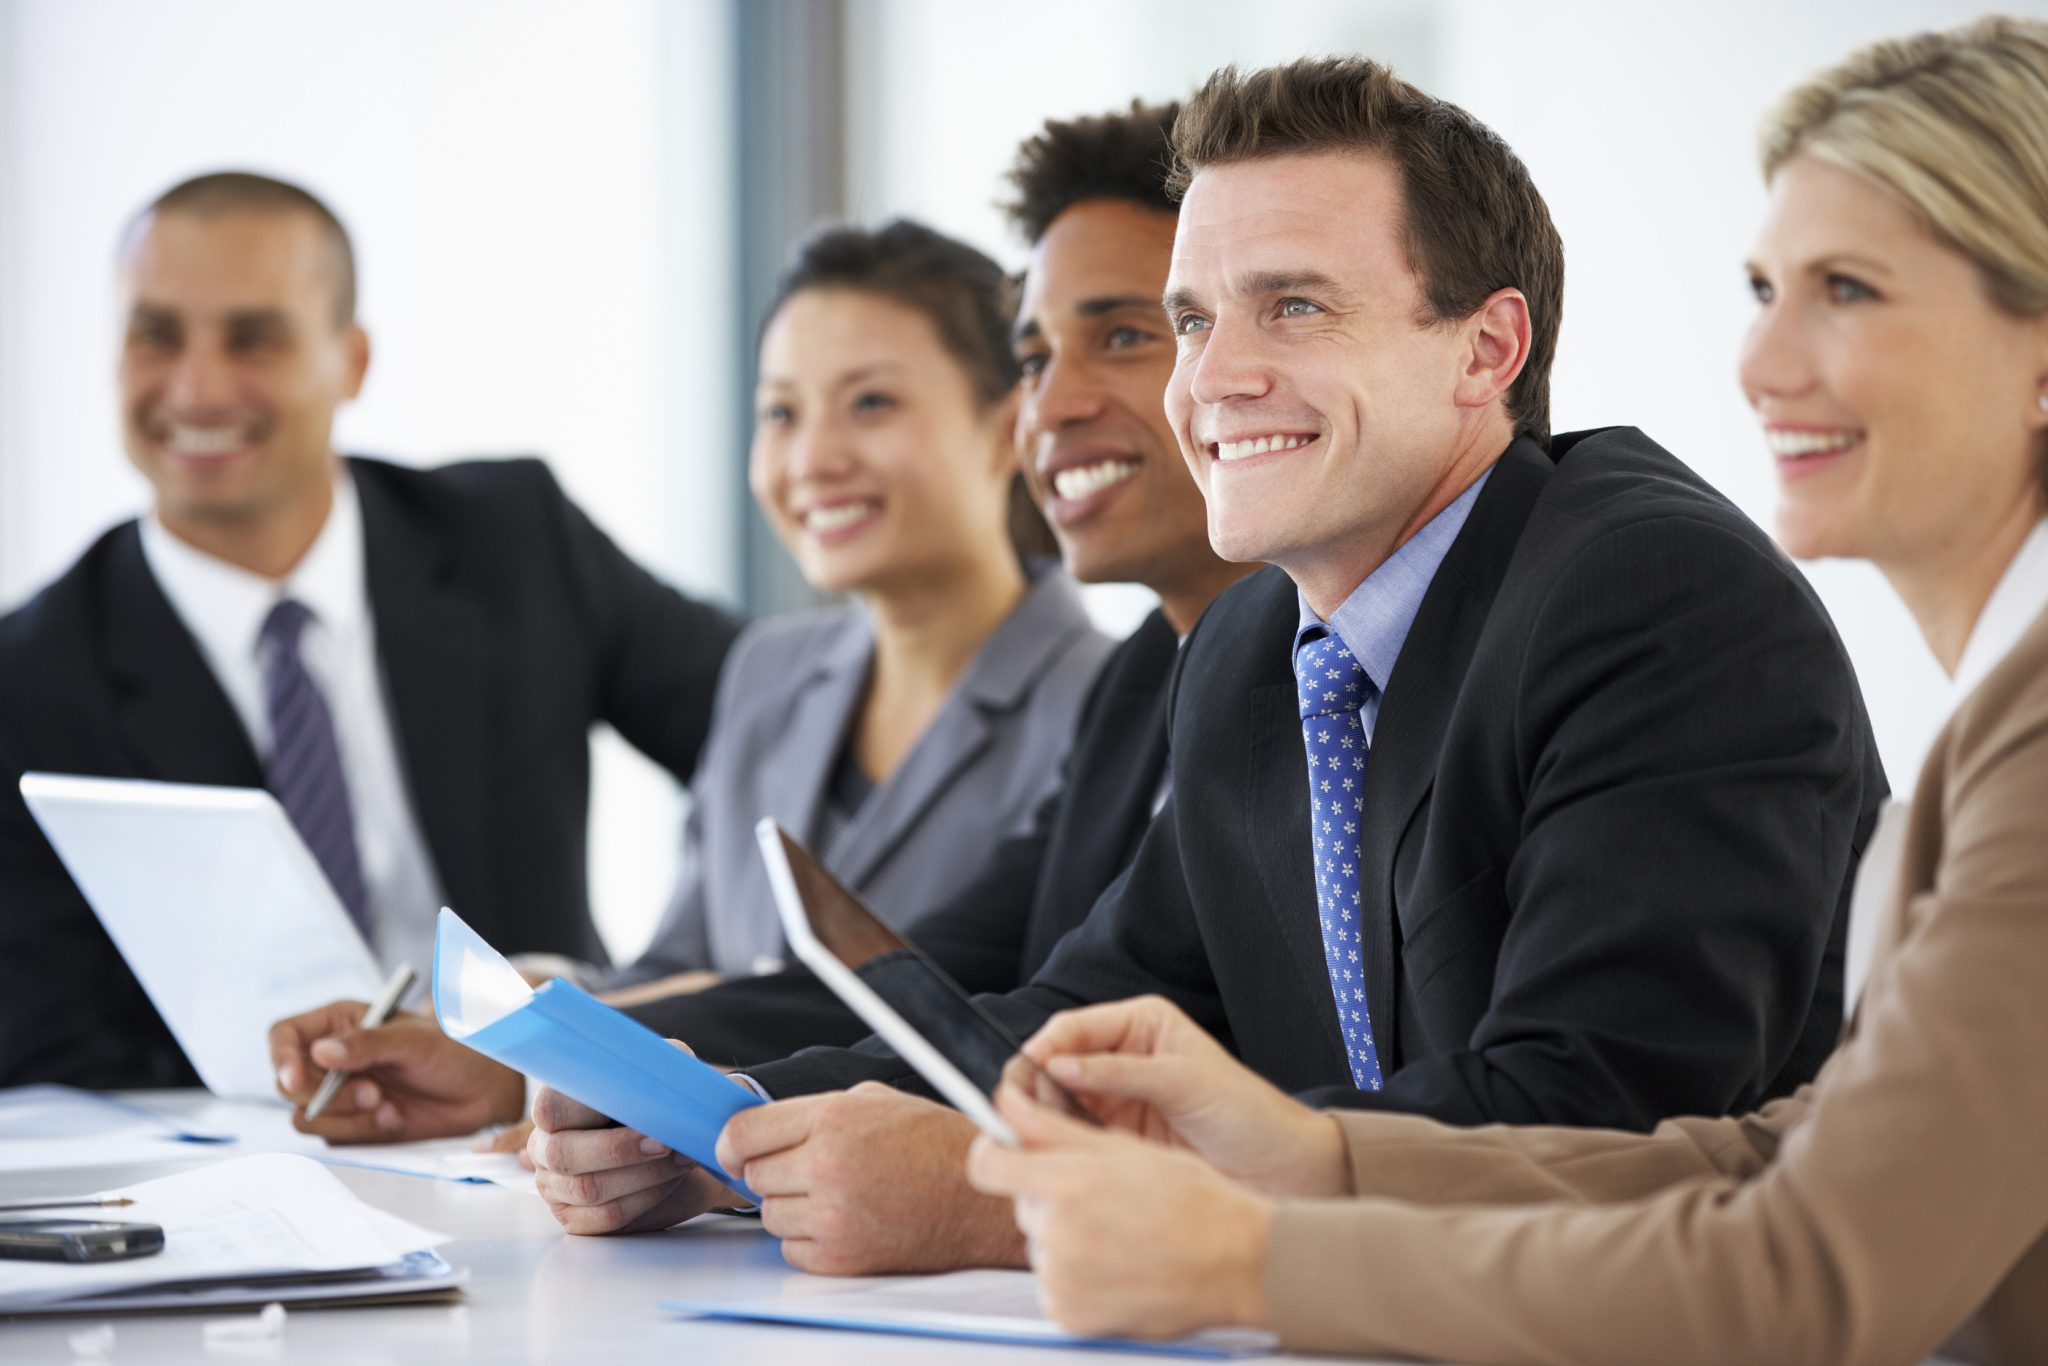 employees sitting at a conference table at in a meeting